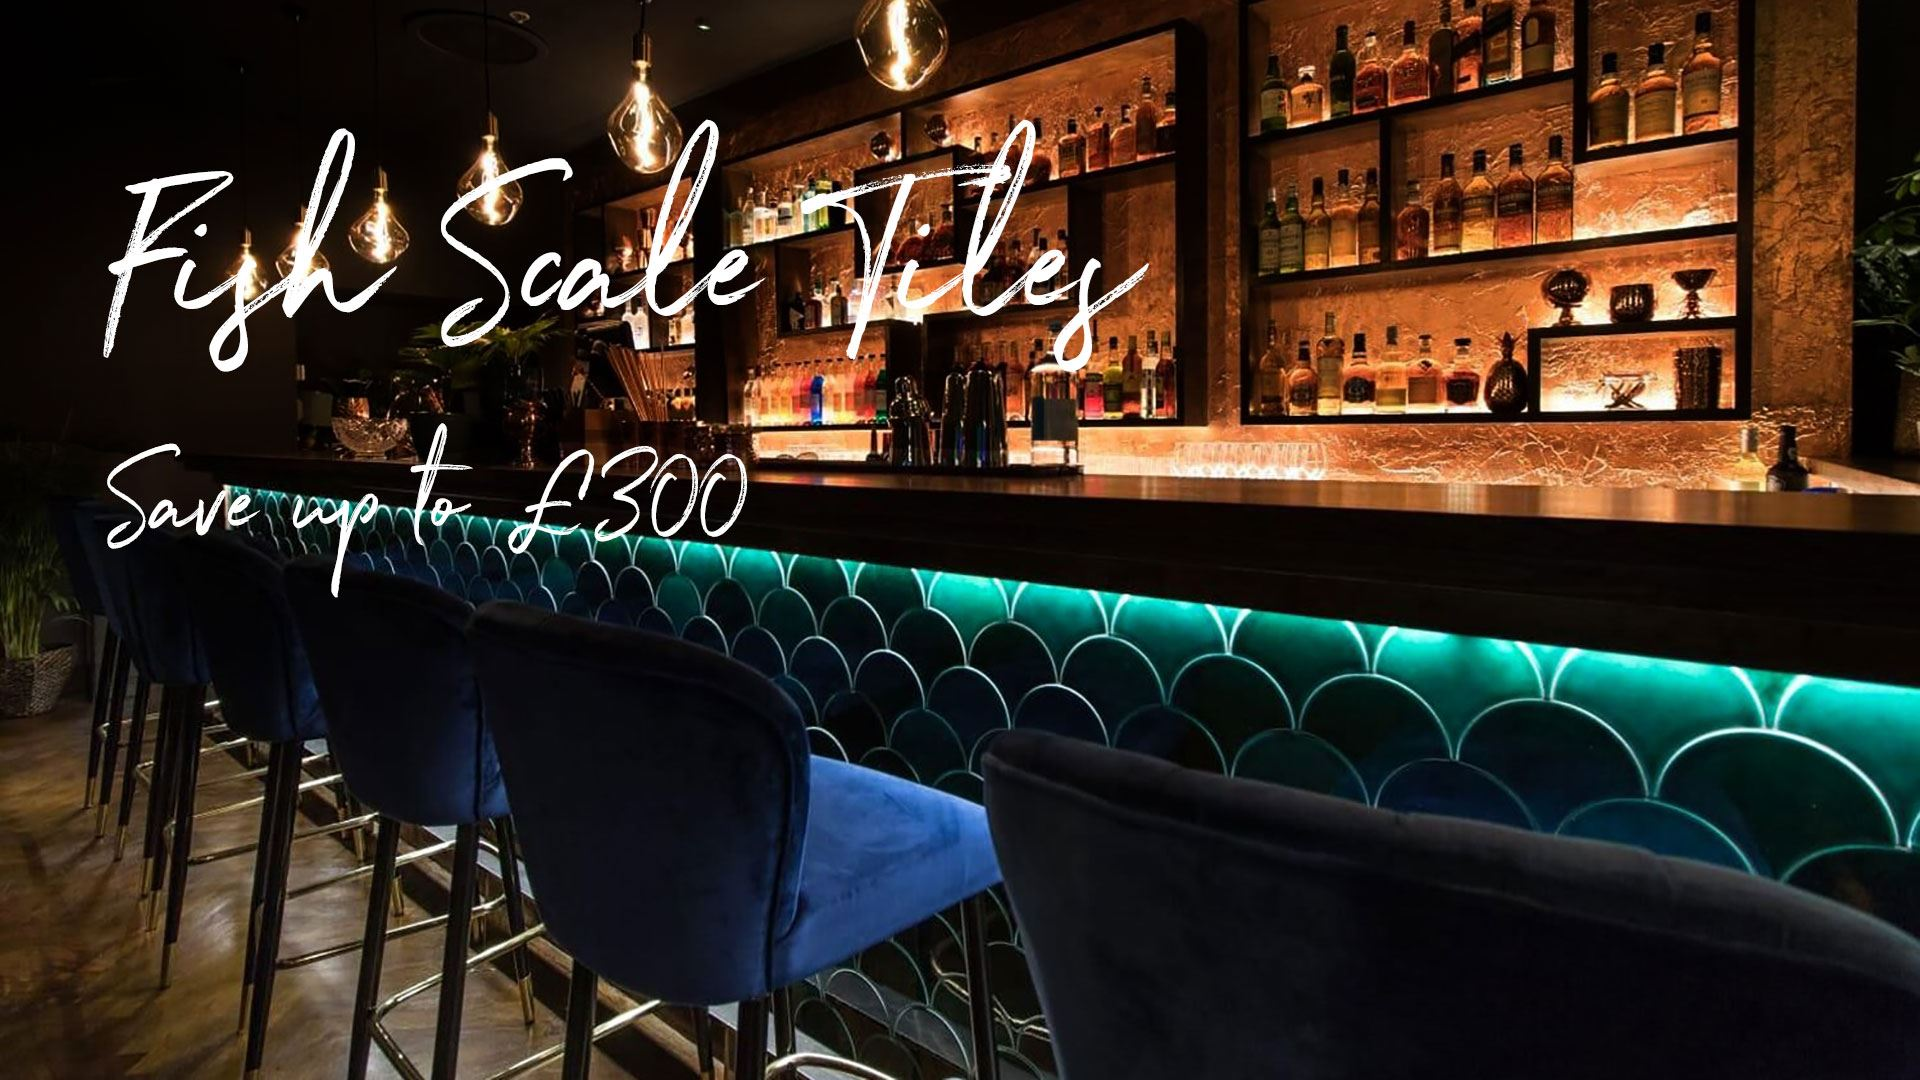 Fish Scale Tile Offer - Save up to £300